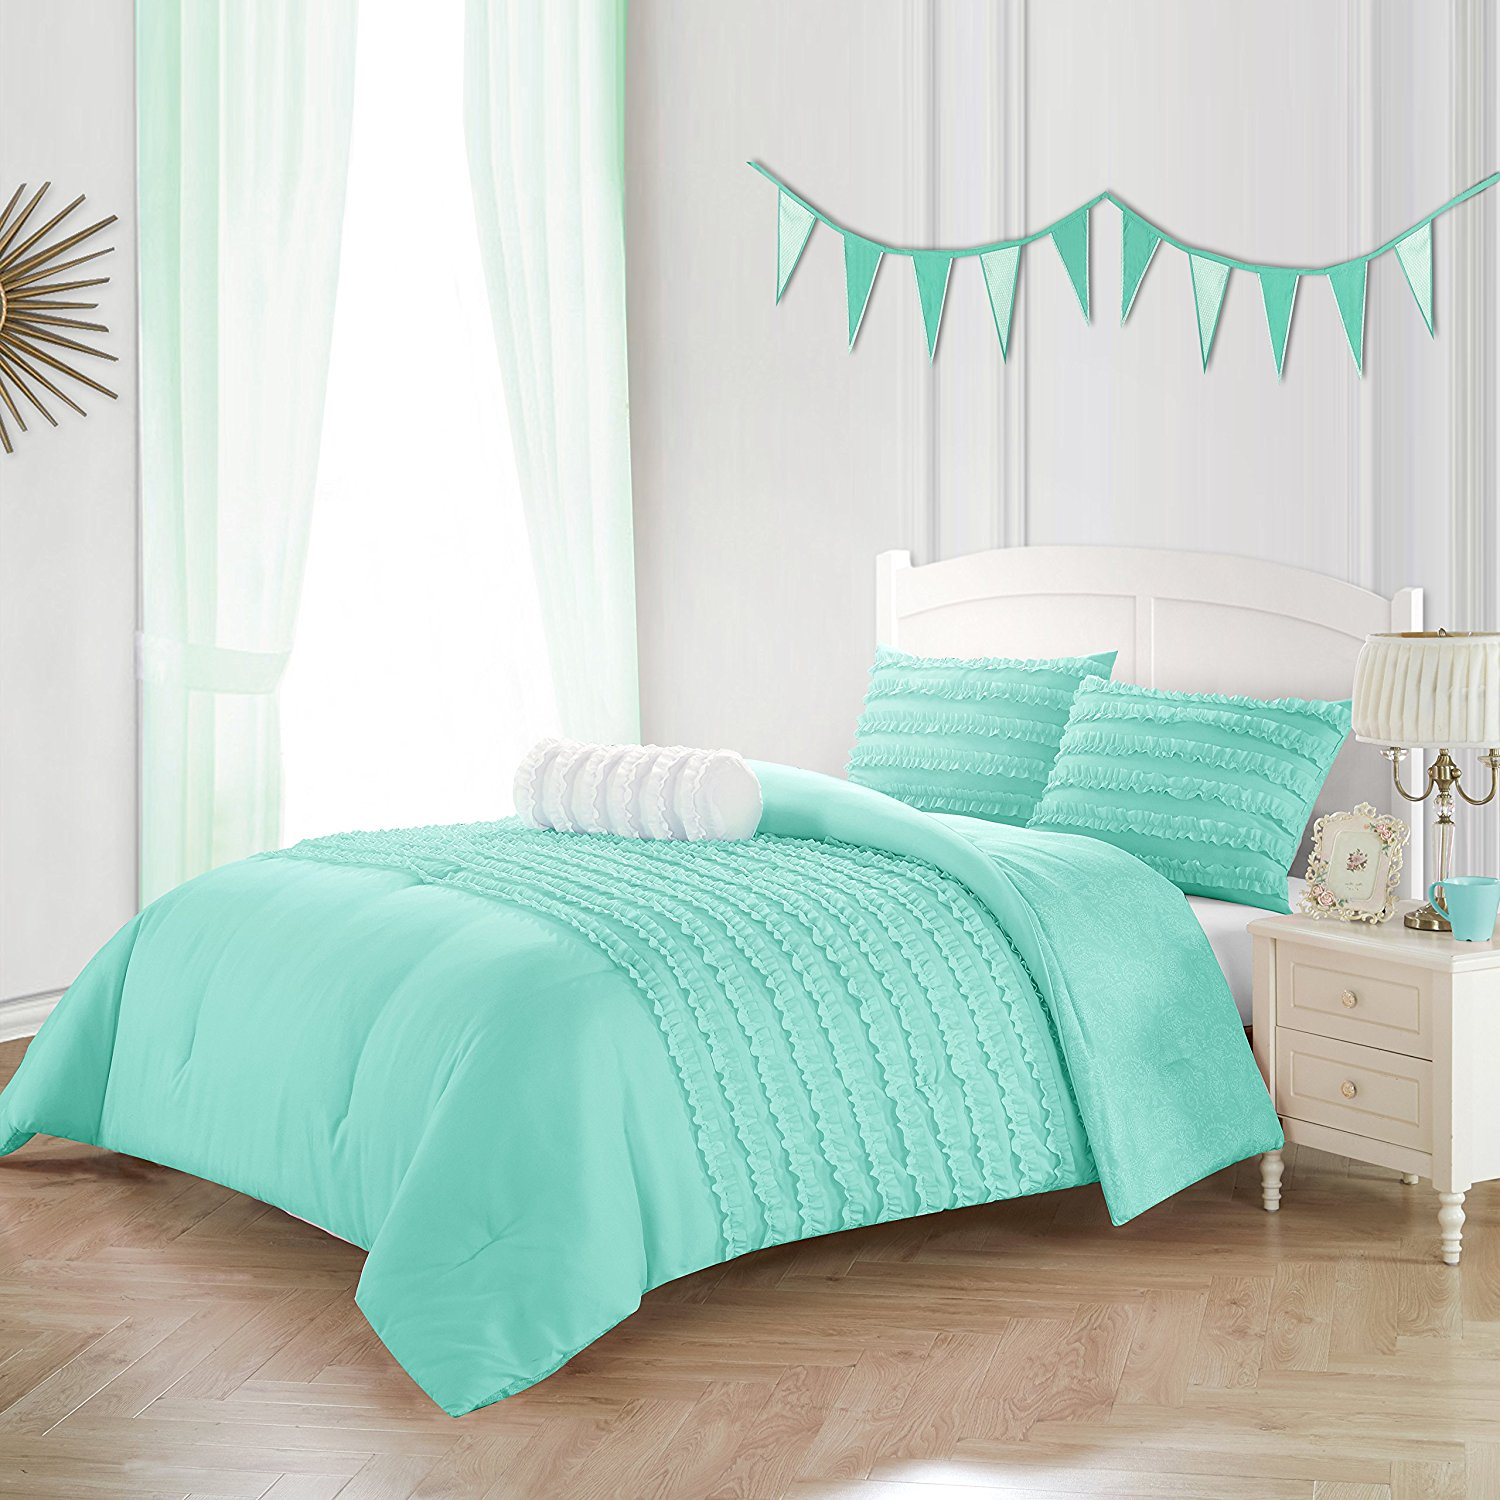 Buy N2 2 Piece Mint Solid Color Textured Ruffle Comforter Set Twin Green Ruched Ripples All Over Design Kids Teen Themed Reversible Kids Bedding For Bedroom Casual Luxurious Polyester In Cheap Price